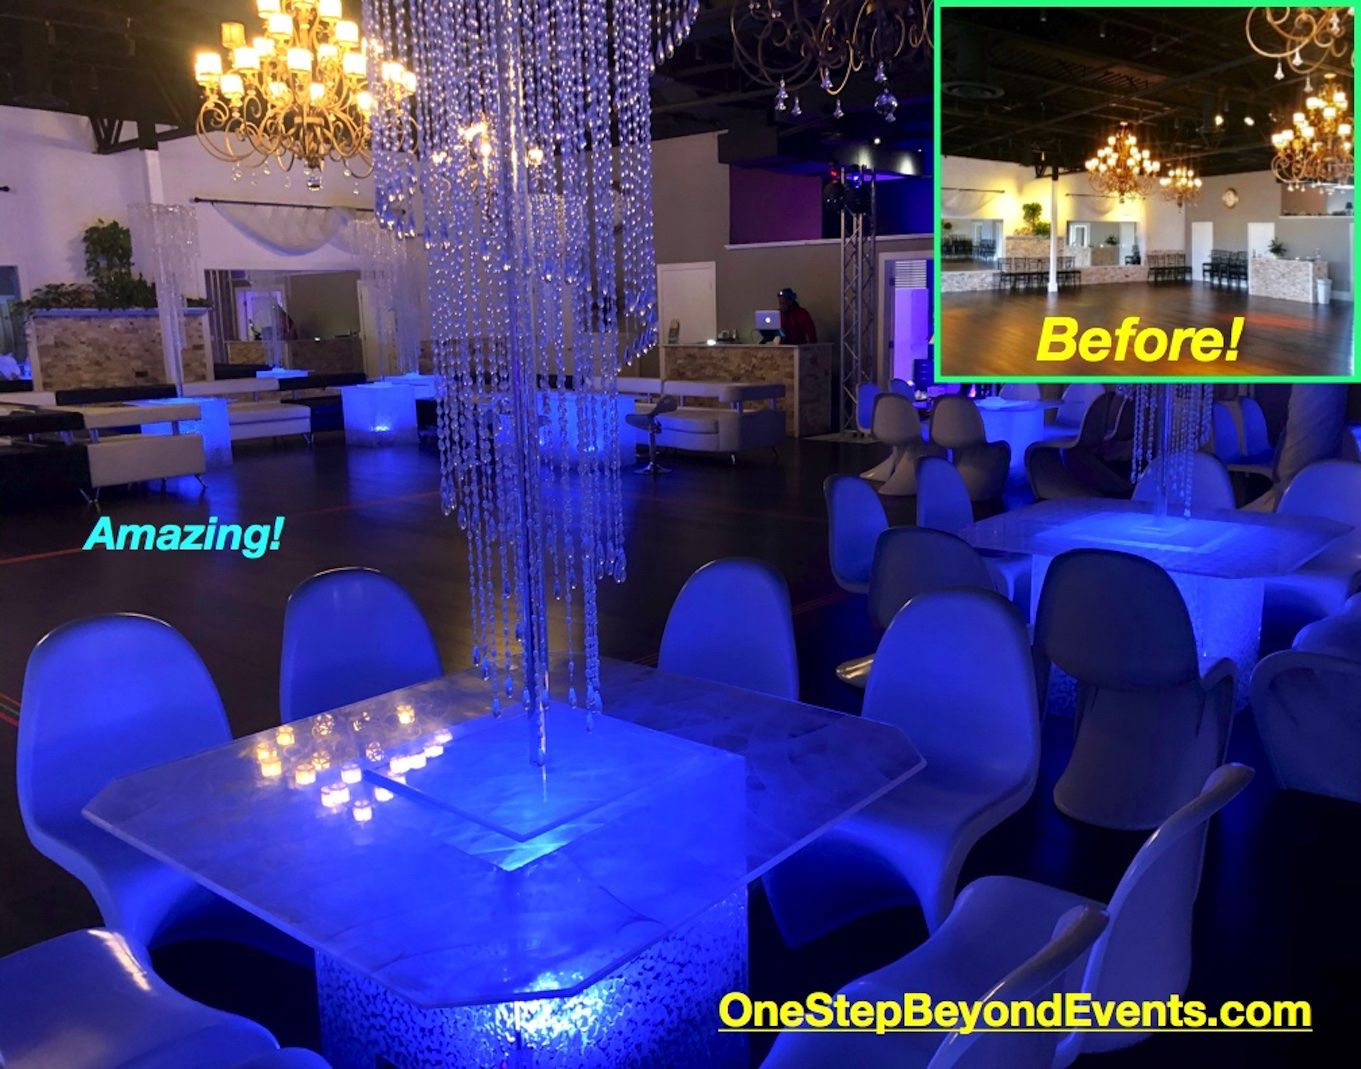 4 X4 Led Tables Seat 8 Guests 75 Rentals For Events Parties In 2020 Glow Table Cocktail Tables Event Rental